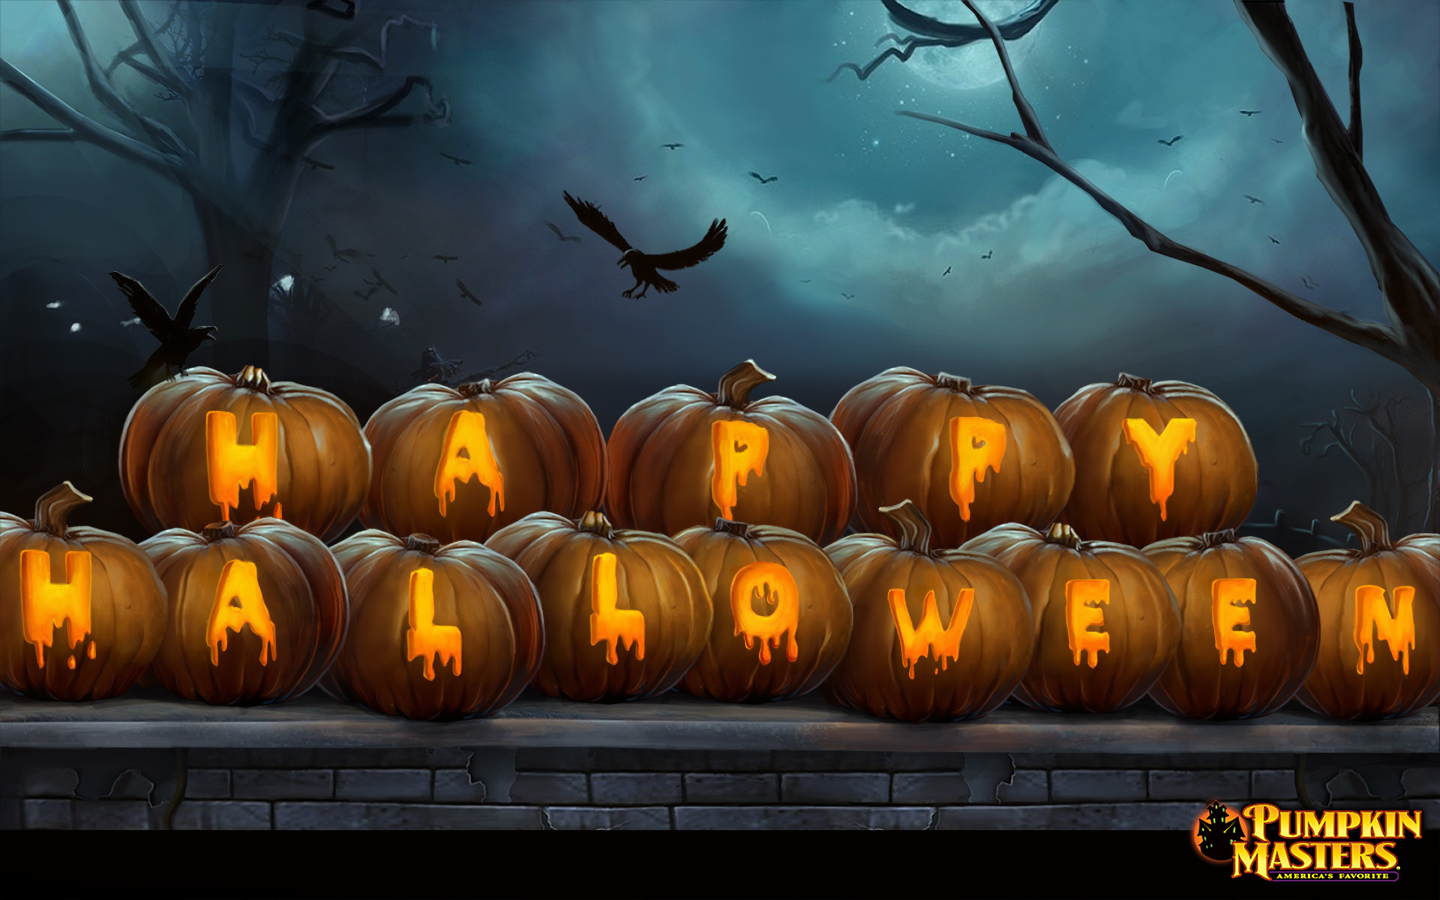 1366 x 768 · 1280 x 1024 · 1080 x 800 · 1024 x 768. Kids Haunted House Free Halloween Wallpaper